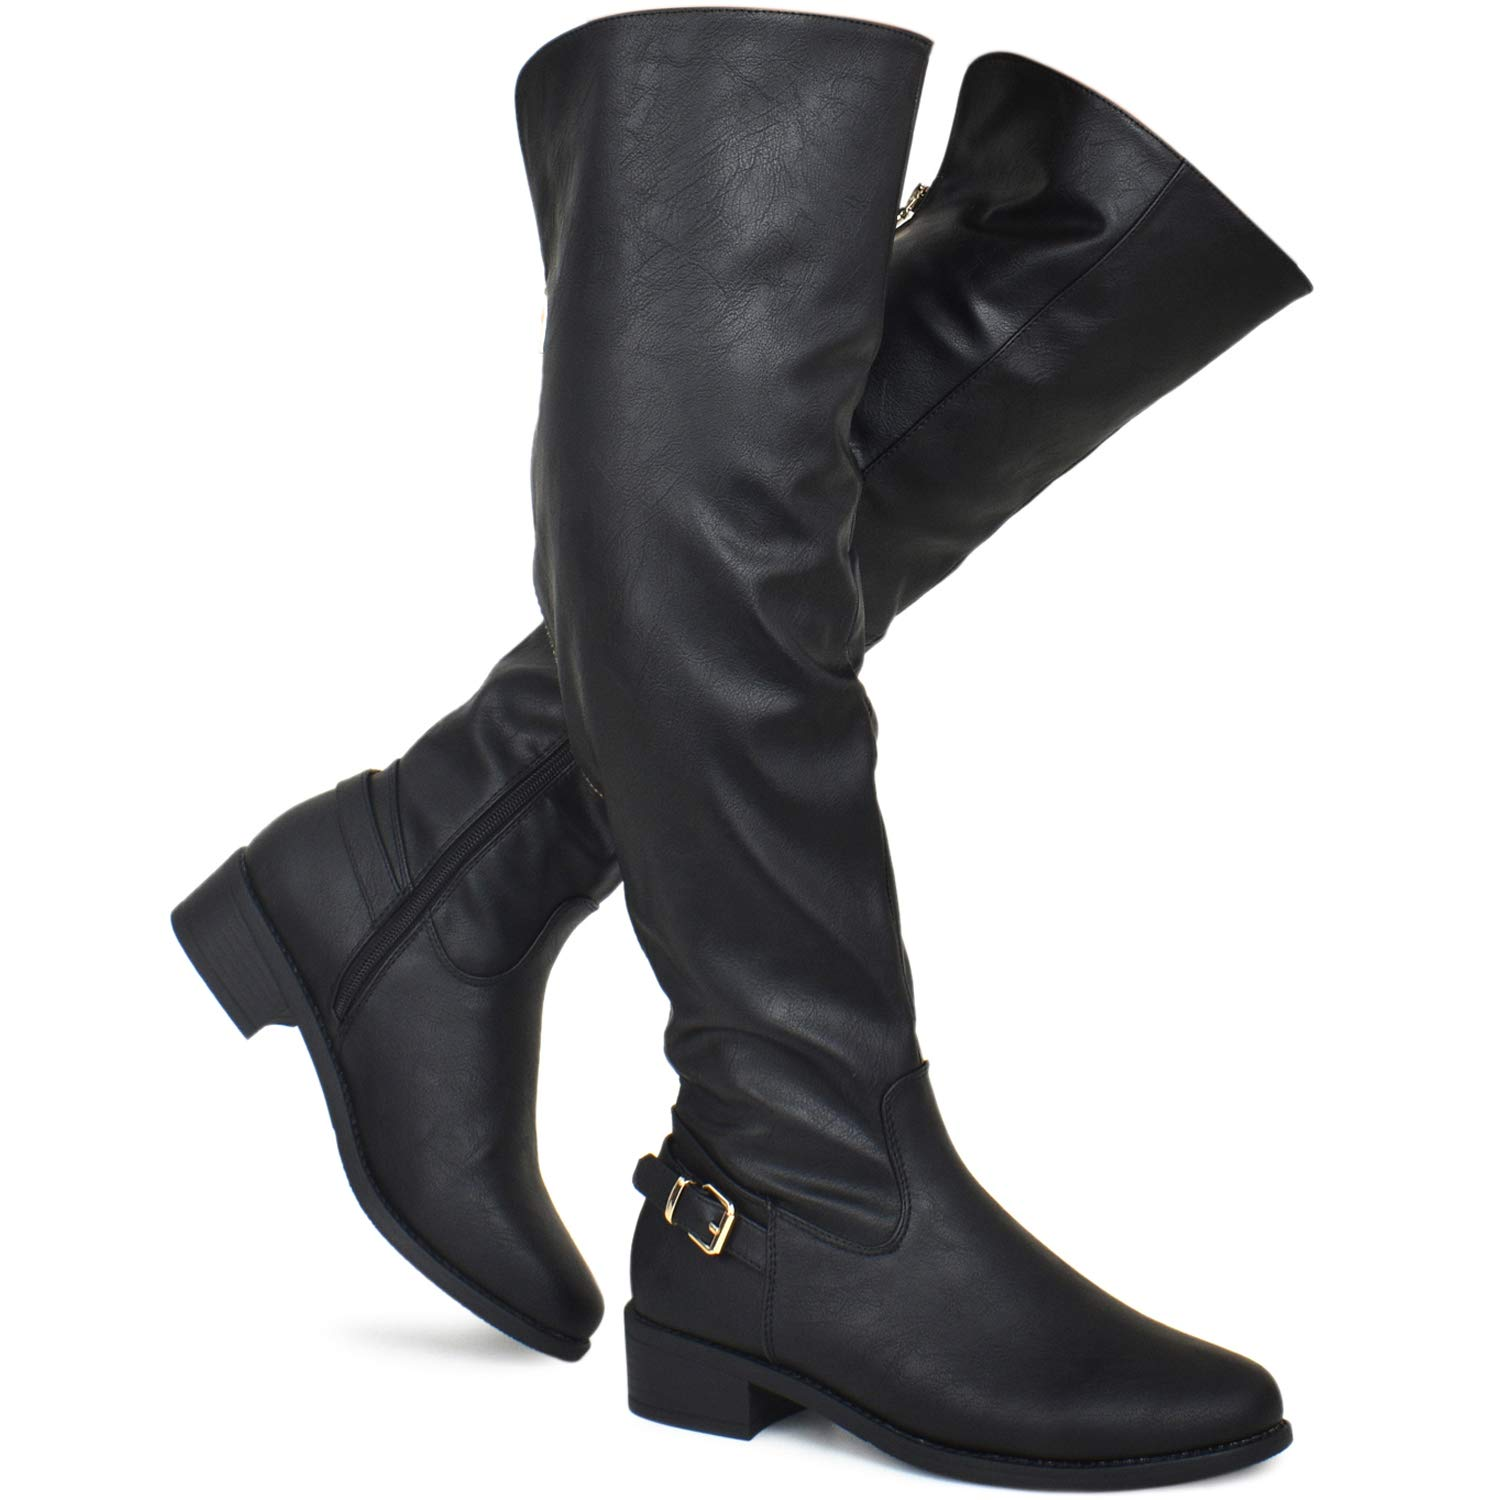 95586efd0a84 Amazon.com: Premier Standard - Women's Lace Up Over Knee High Sexy Boots -  Side Zipper Comfortable Walking Boots: Shoes